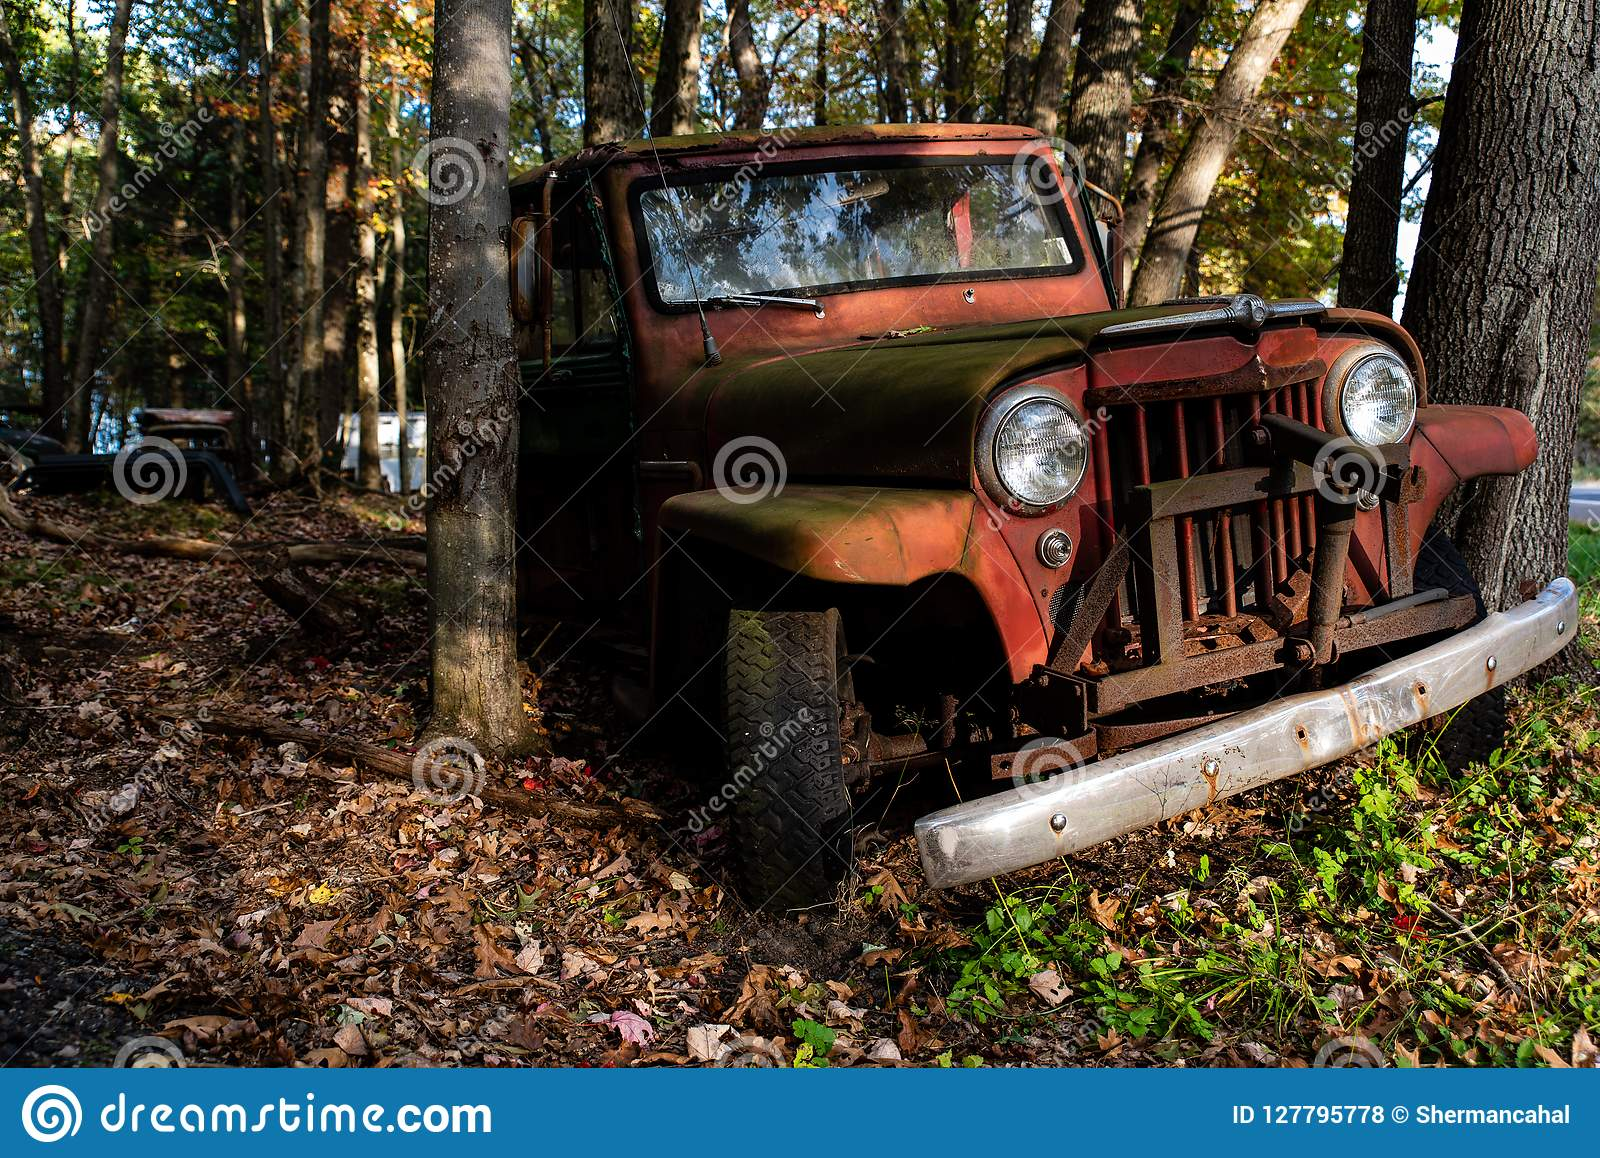 Abandoned Willys Jeep Station Wagon - Junkyard - Pennsylvania